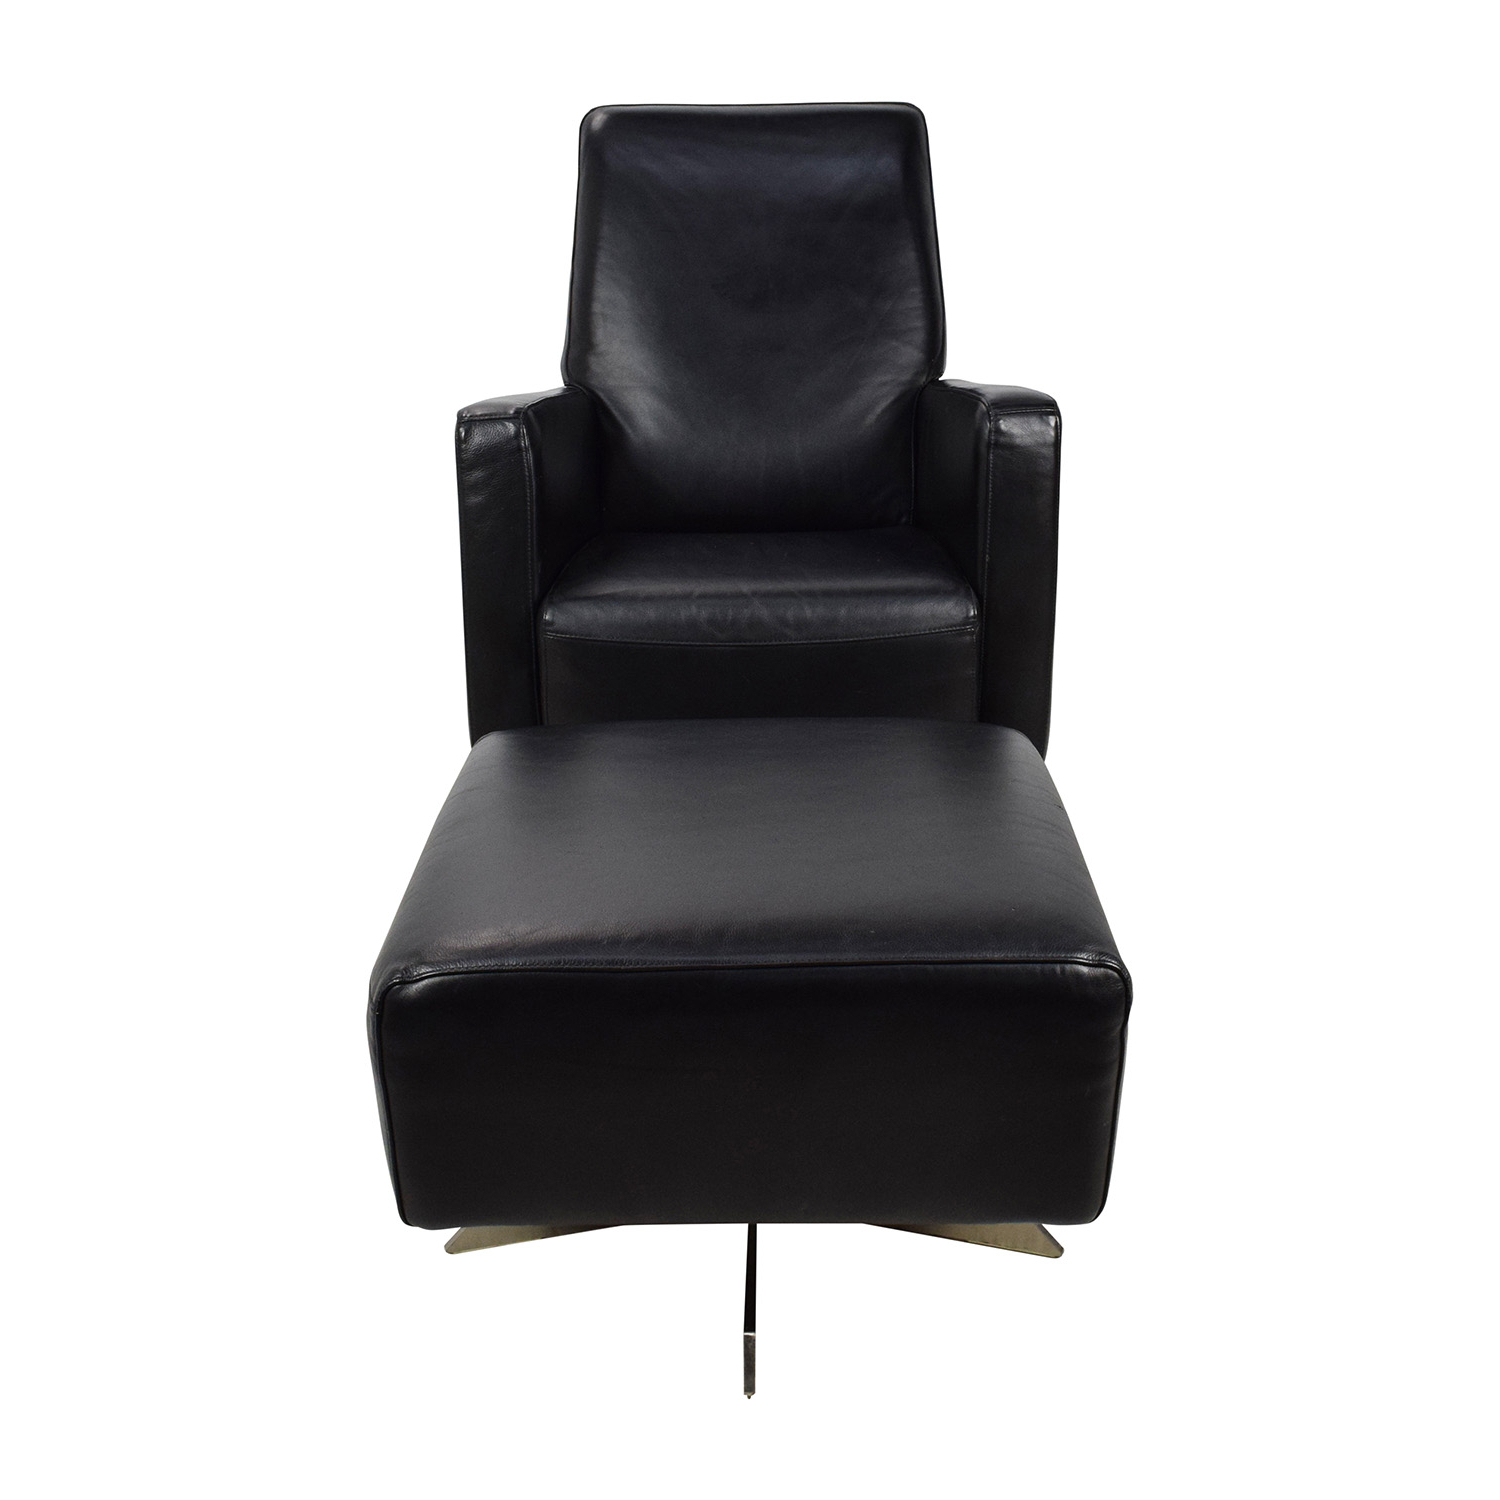 [%90% Off – Natuzzi Natuzzi Black Leather Swivel Chair With Ottoman Inside Most Recent Leather Black Swivel Chairs|leather Black Swivel Chairs With 2019 90% Off – Natuzzi Natuzzi Black Leather Swivel Chair With Ottoman|well Known Leather Black Swivel Chairs With Regard To 90% Off – Natuzzi Natuzzi Black Leather Swivel Chair With Ottoman|widely Used 90% Off – Natuzzi Natuzzi Black Leather Swivel Chair With Ottoman Intended For Leather Black Swivel Chairs%] (View 20 of 20)